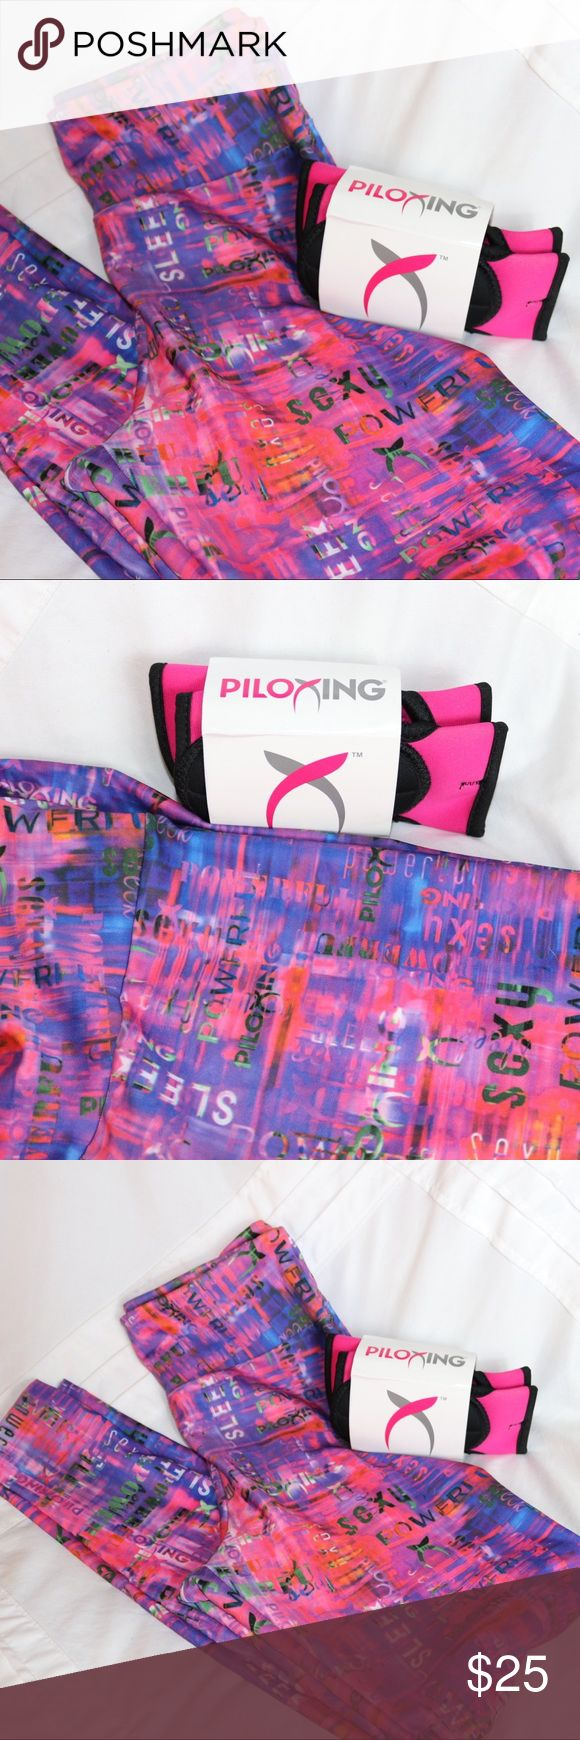 Piloxing Kit, Leggings & Gloves! Patterned Fitness Leggings with 1/2 pound Piloxing Gloves. Brand new Piloxing Other